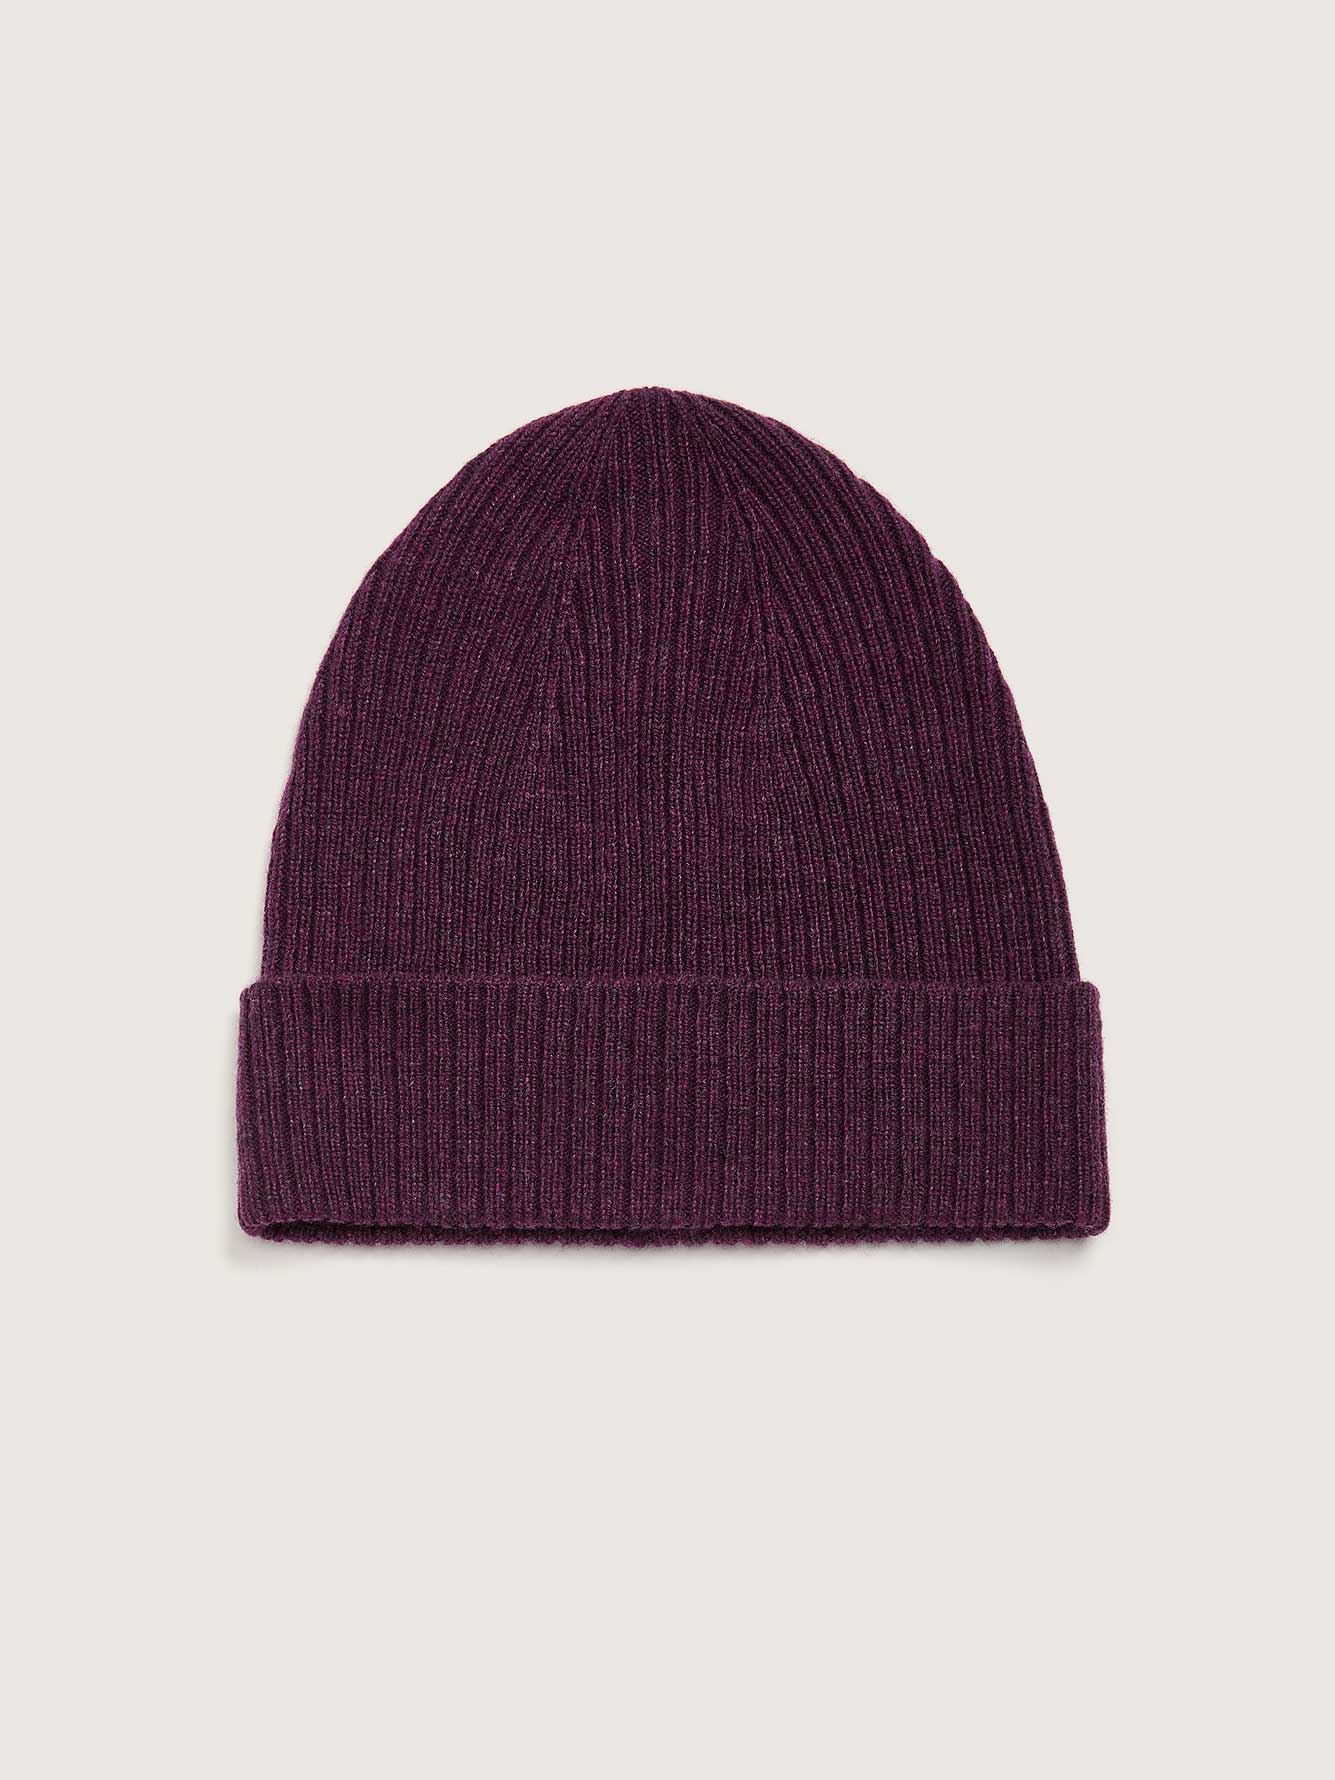 Rib Knit Cashmere Blend Beanie - Addition Elle